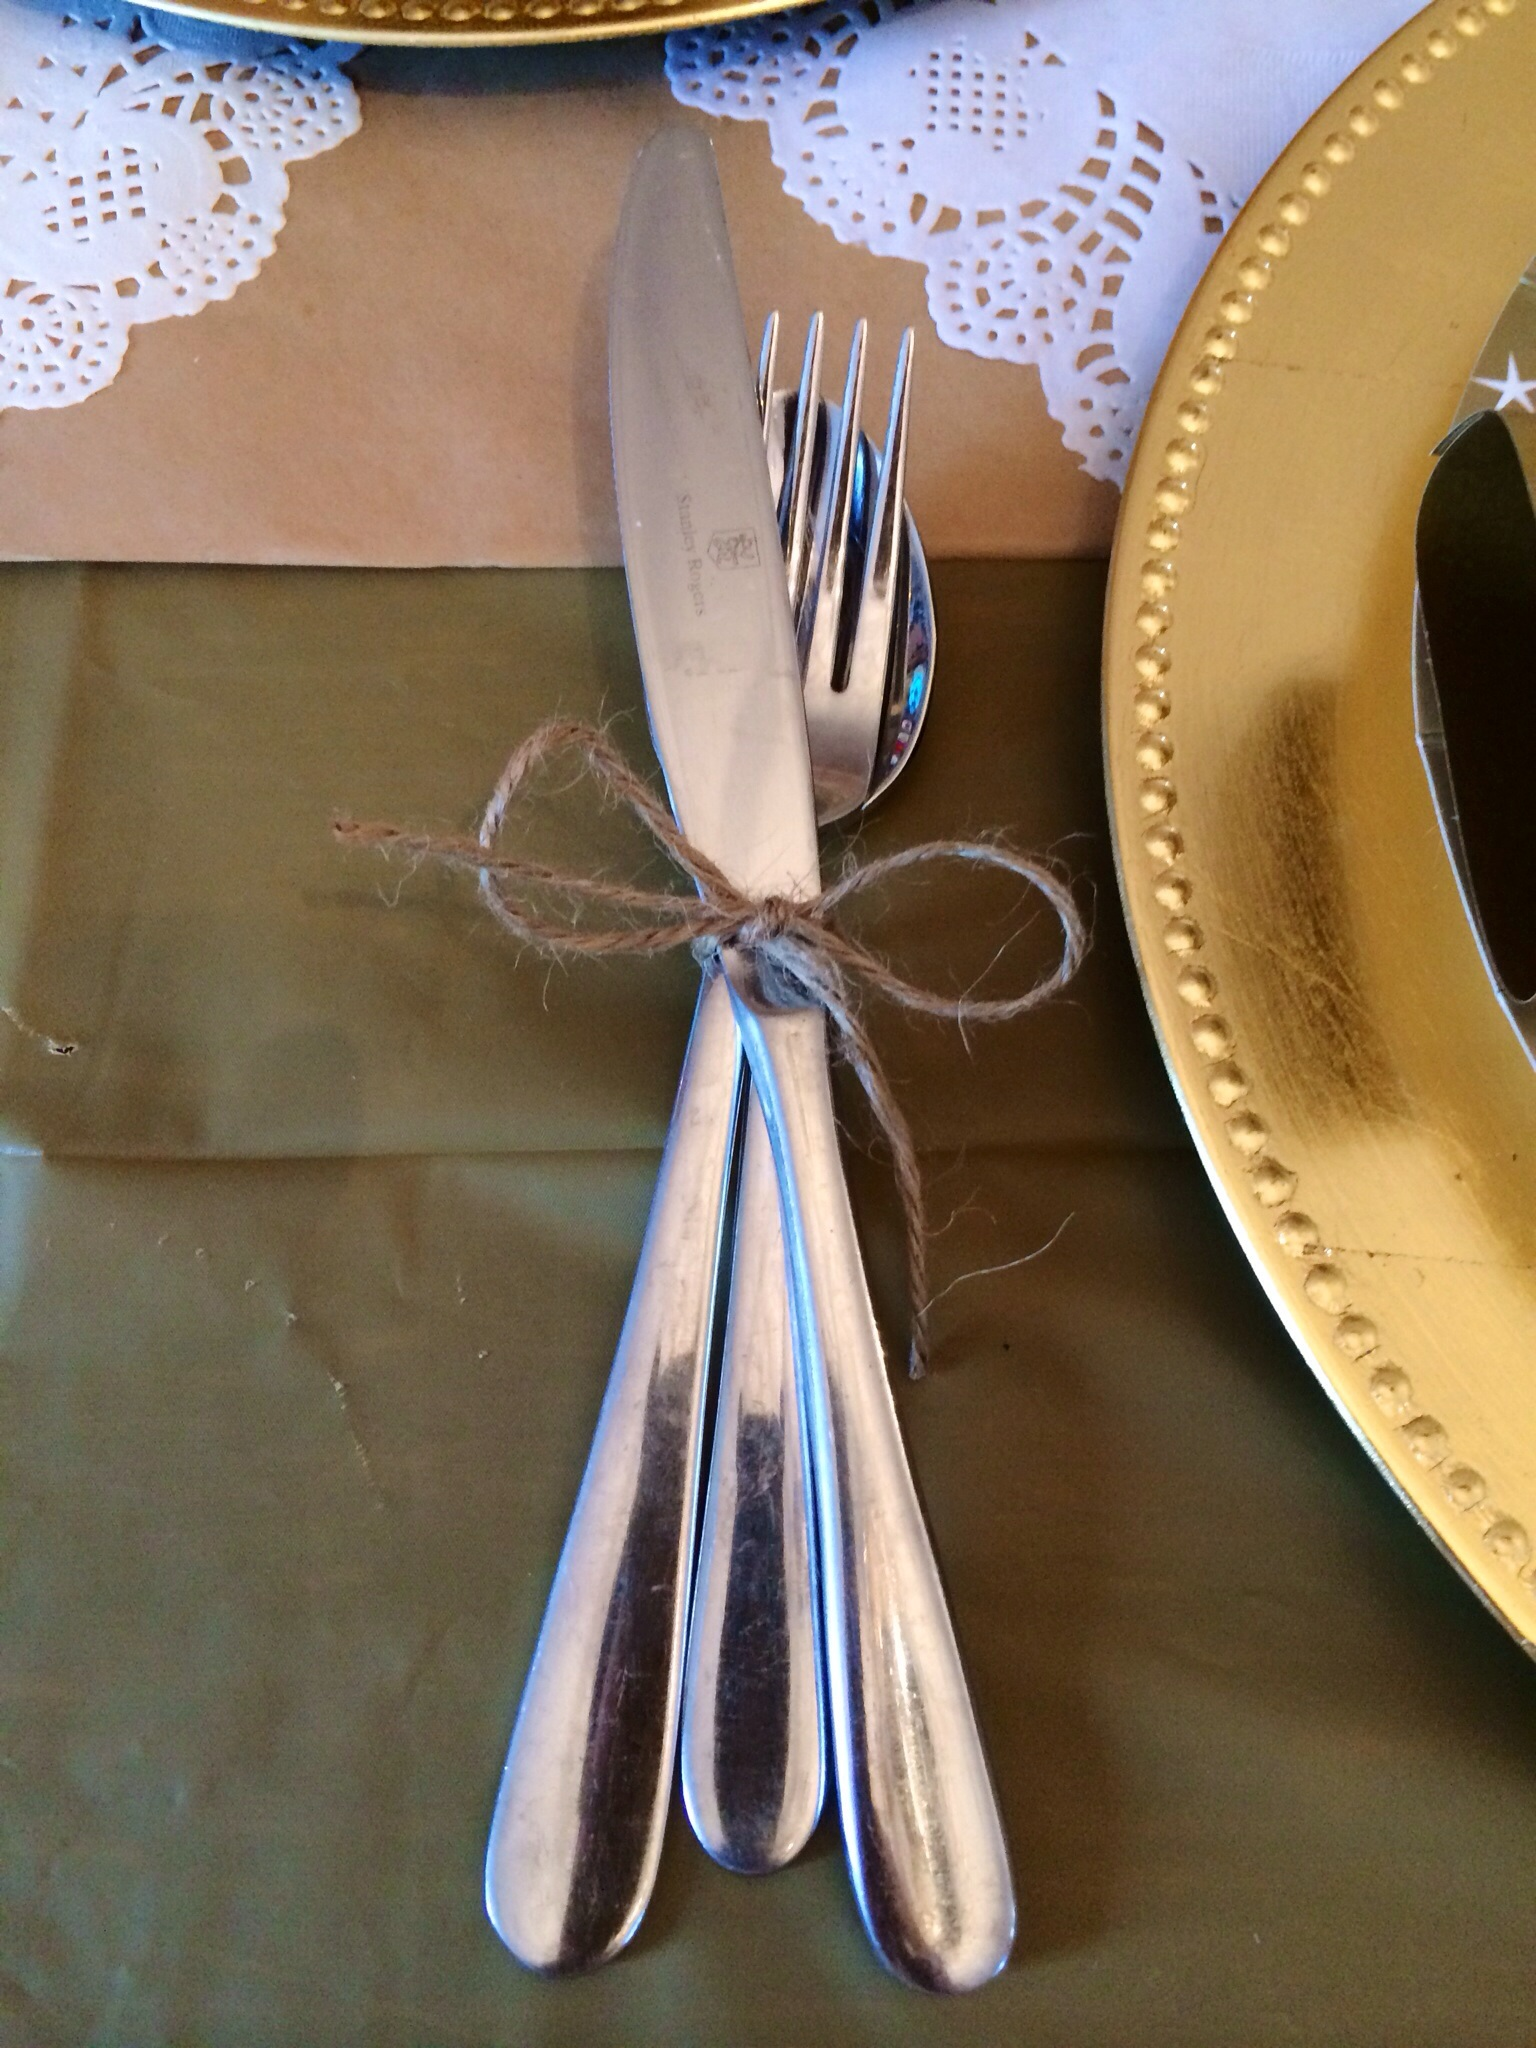 christmas something tie runner table a to kmart forks knives to up little table the the adds and